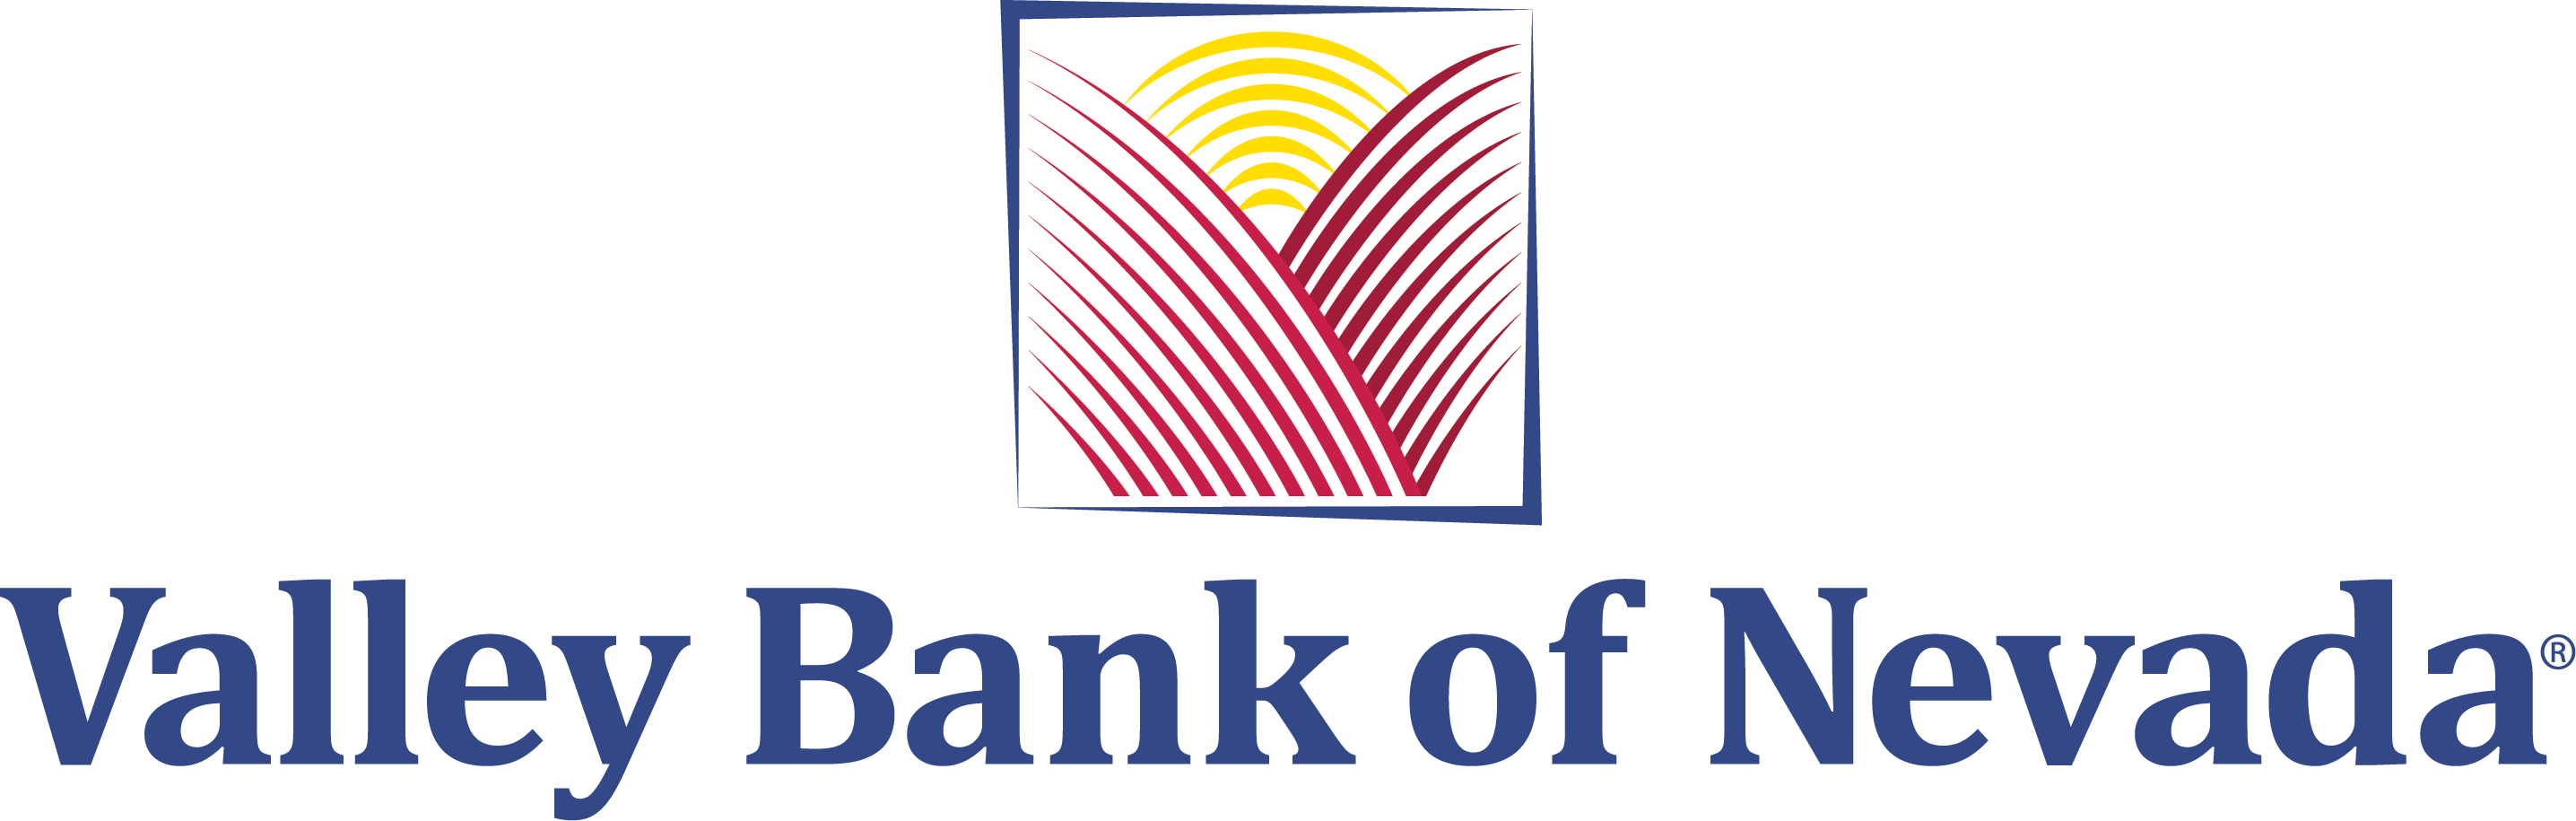 Valley Bank of Nevada Logo - Mobile